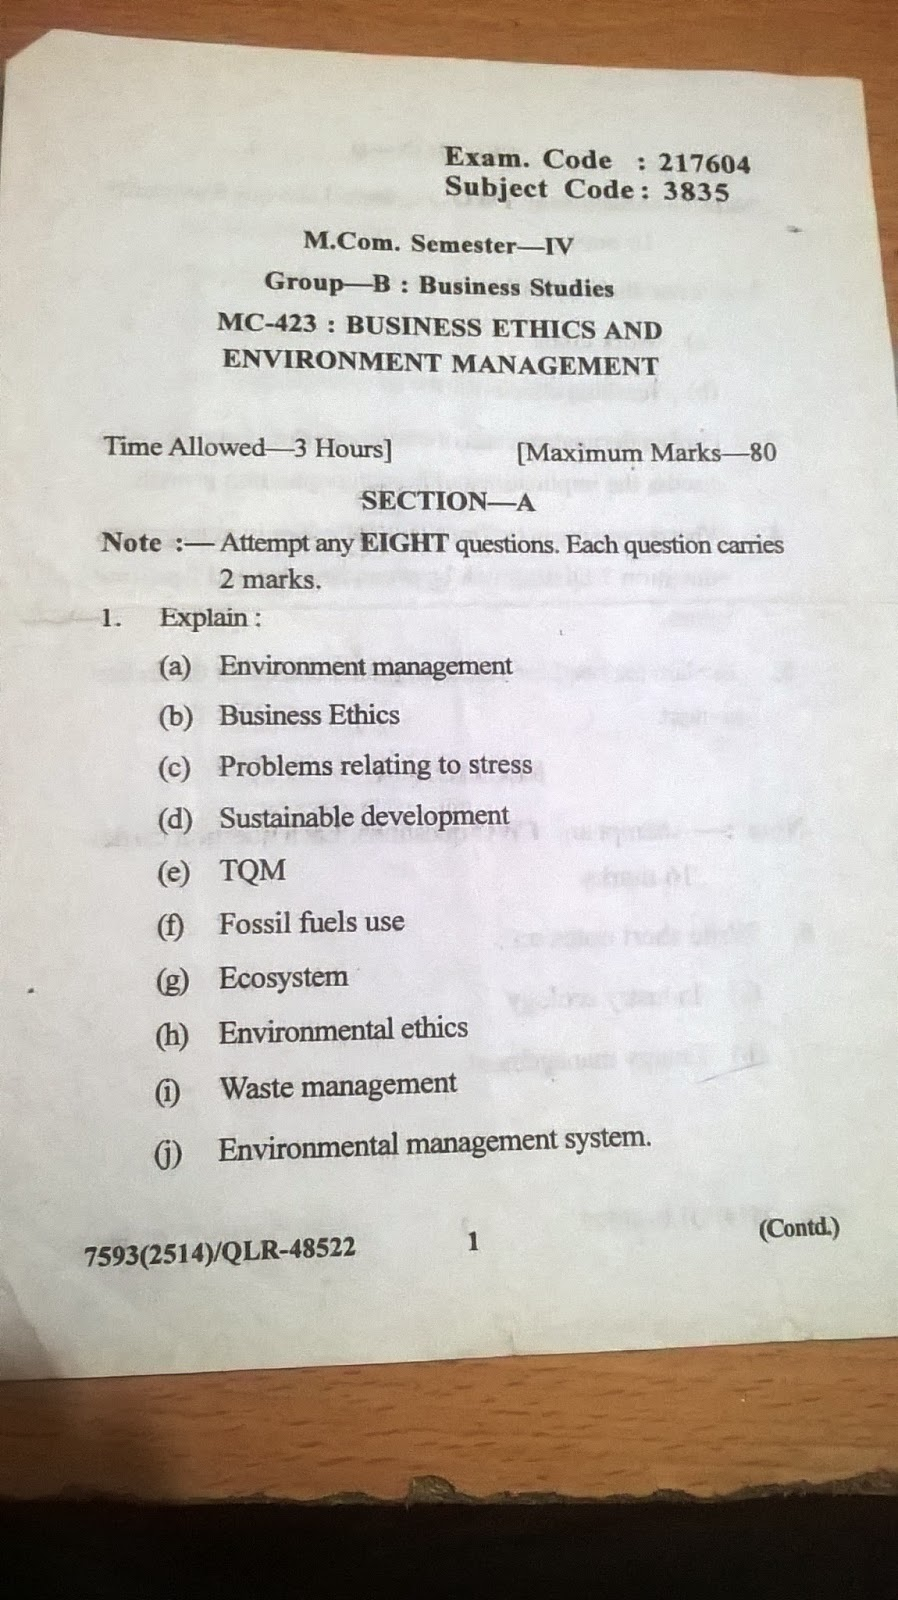 025 Research Paper Business Management Topic For Businessethicsandenviornmentmanagement4thsem Unforgettable Topics Techniques Pdf Full